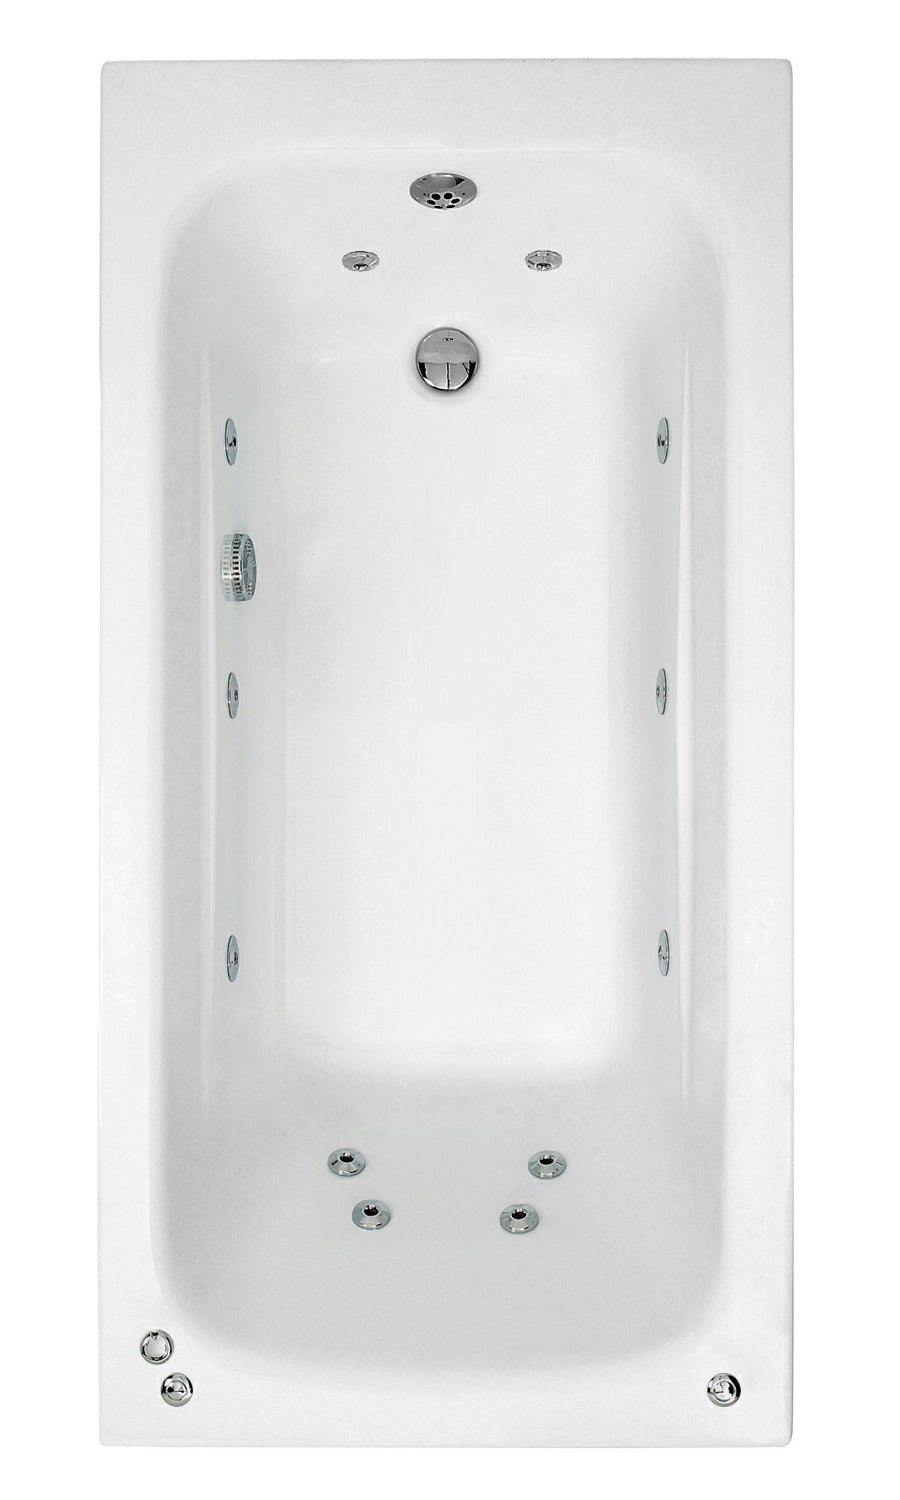 Phoenix Crystal 1400 x 700mm Single Ended Whirlpool Bath - BH061S1